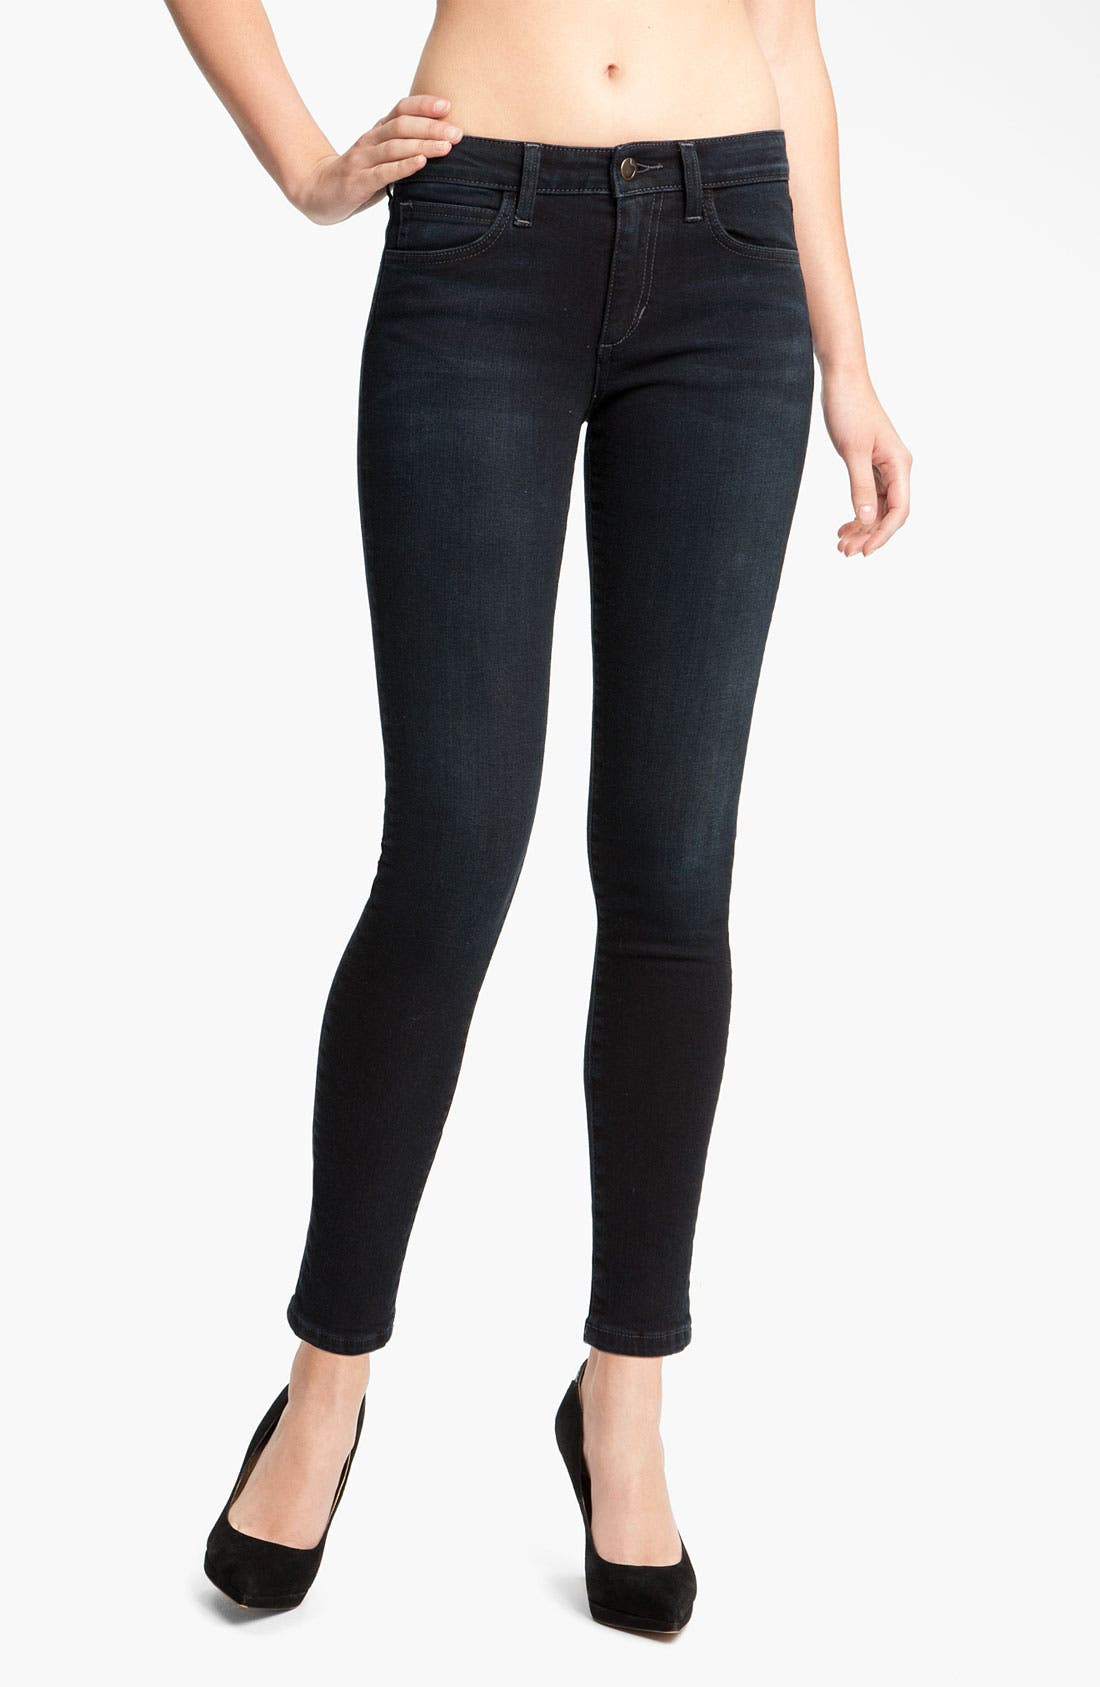 Alternate Image 1 Selected - Joe's Skinny Stretch Ankle Jeans (Tabitha Blue/Black)